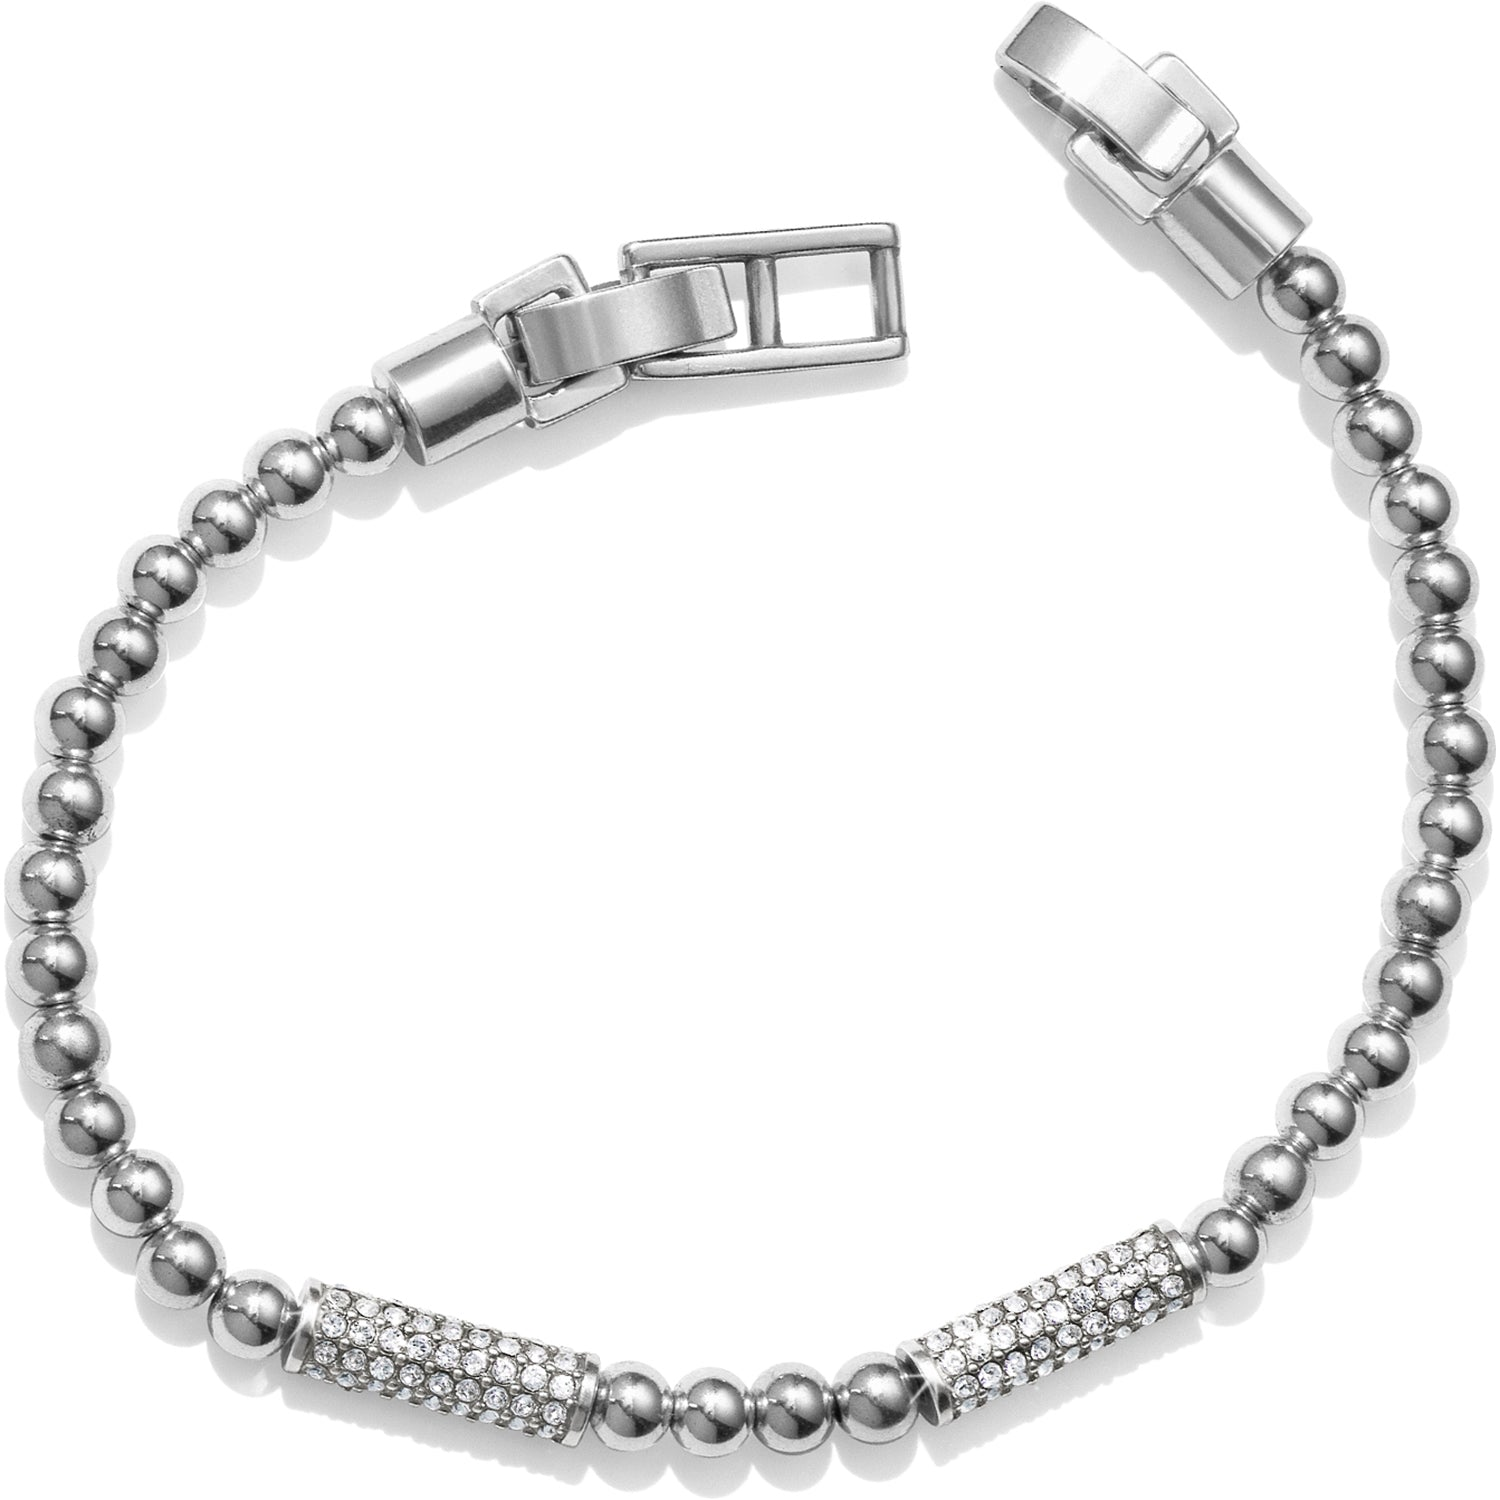 "On a ball chain bracelet, two Swarovski encrusted bars glimmer and sparkle, this Meridian Petite Stack Bar Bracelet is an easy choice.  Width: 1/8"" Closure: Fold over clasp Length: 7 1/4"" Material: Swarovski crystal Finish: Silver plated"